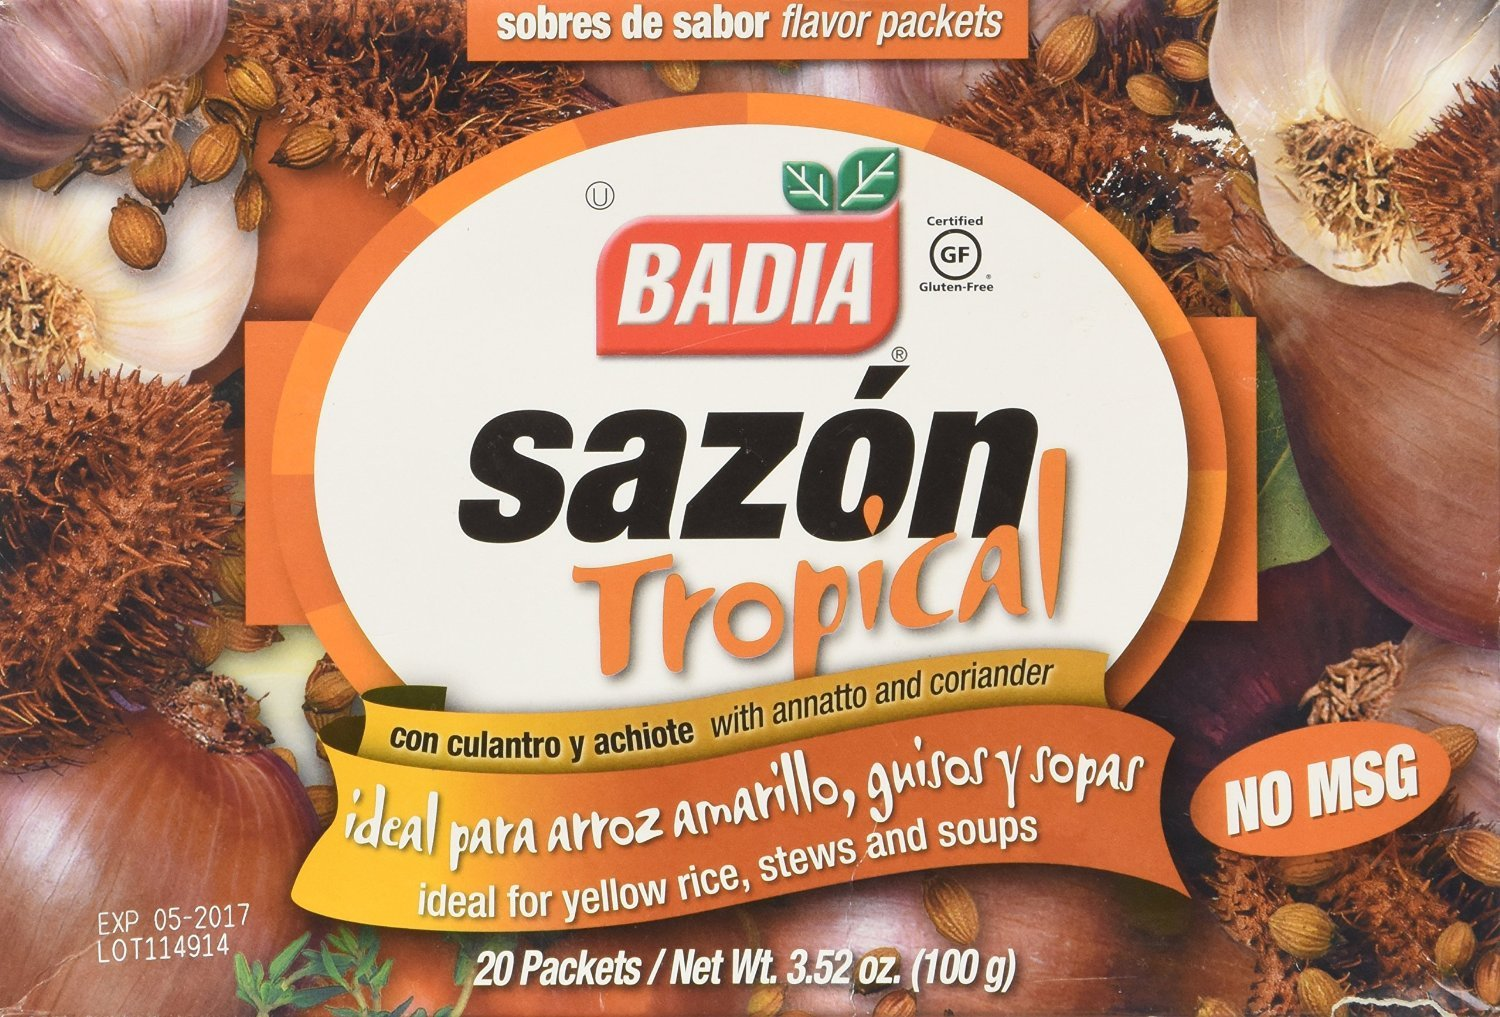 (3 Boxes) Badia, Sazon Tropical Seasoning with Coriander and Annatto 20 packets, 3.52-Ounce, No MSG